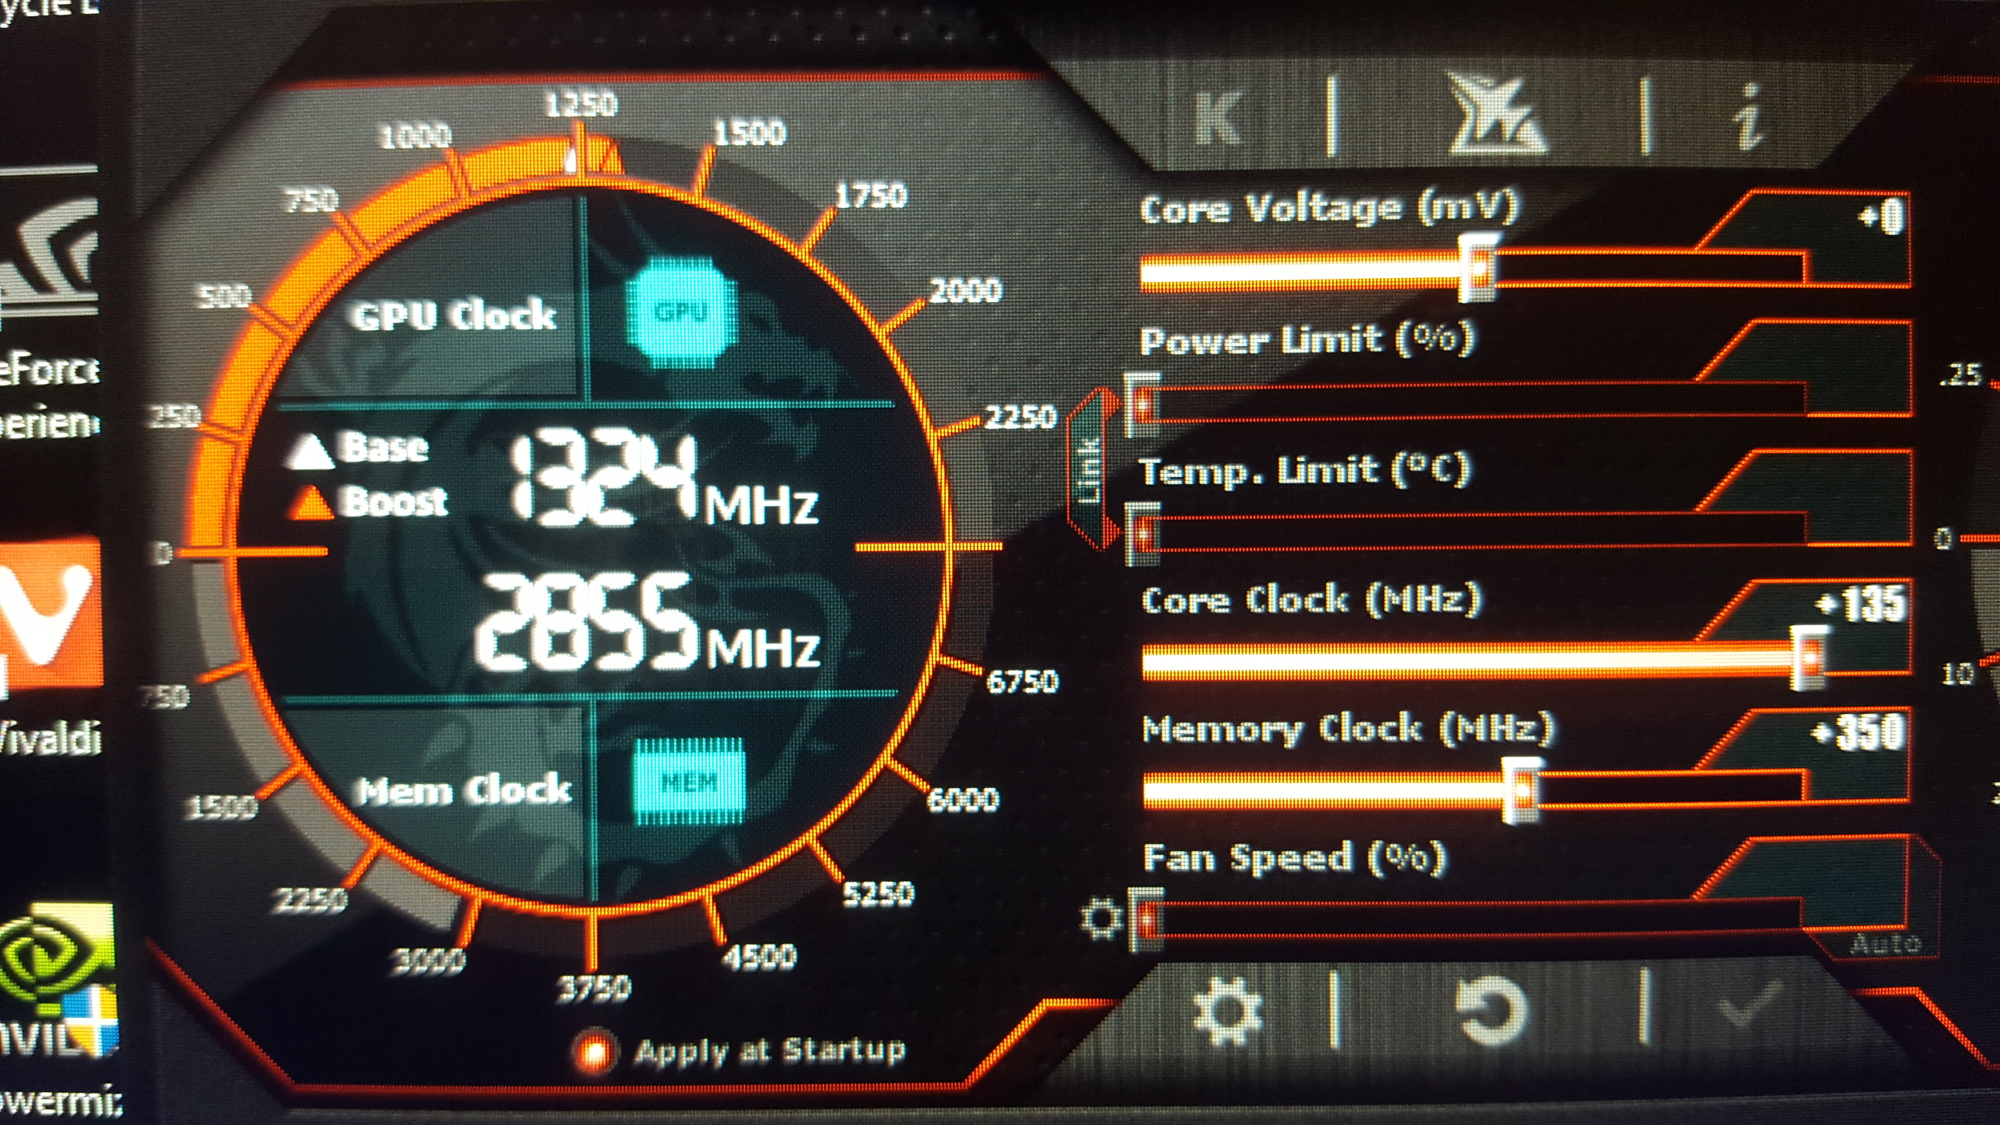 Dell Inspiron 7559 Overclocking, It's great    - Laptops and